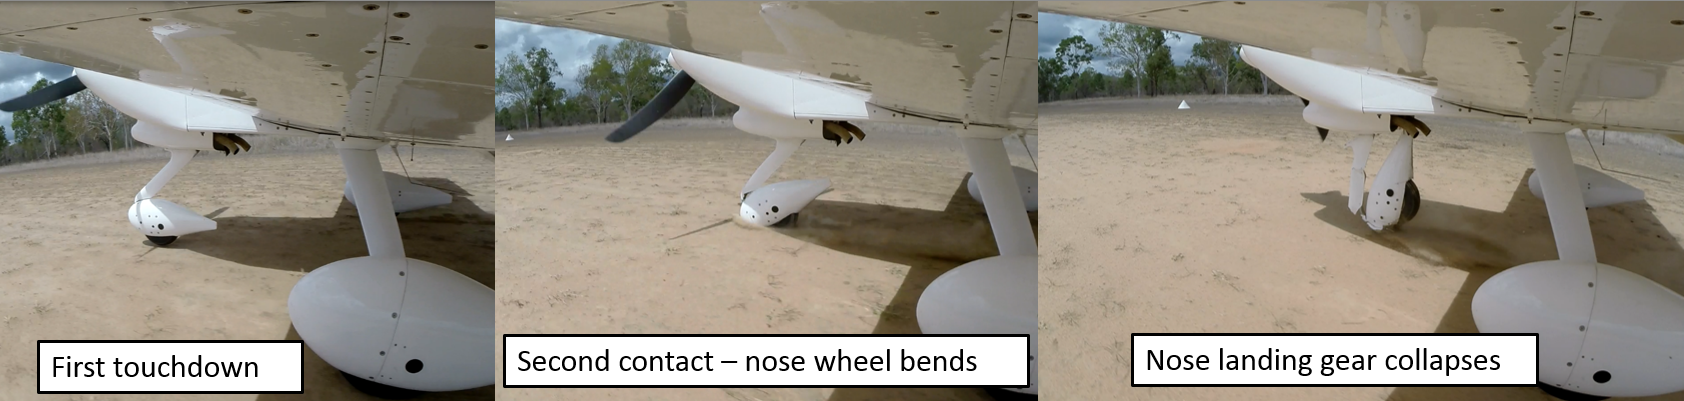 Figure 2: Landing sequence with collapse of nose landing gear